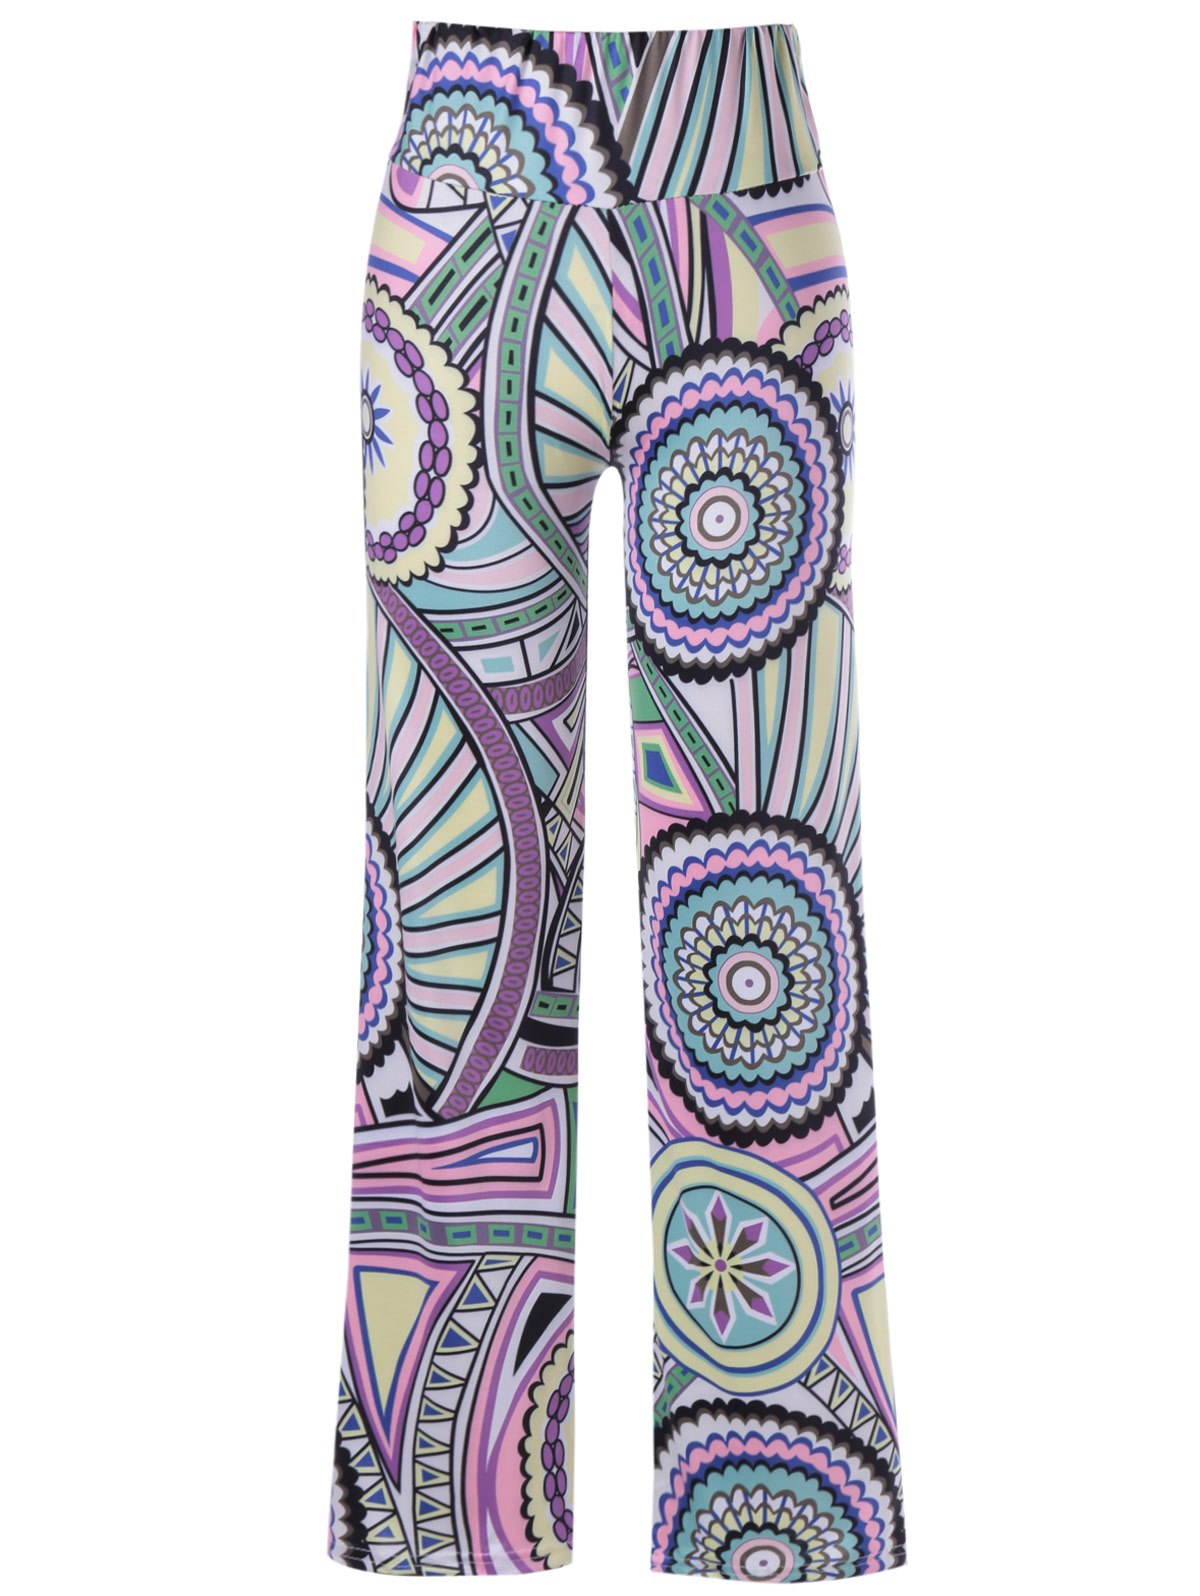 Causal Women's Elastic Waist Pattern Print Pants - COLORMIX ONE SIZE(FIT SIZE XS TO M)